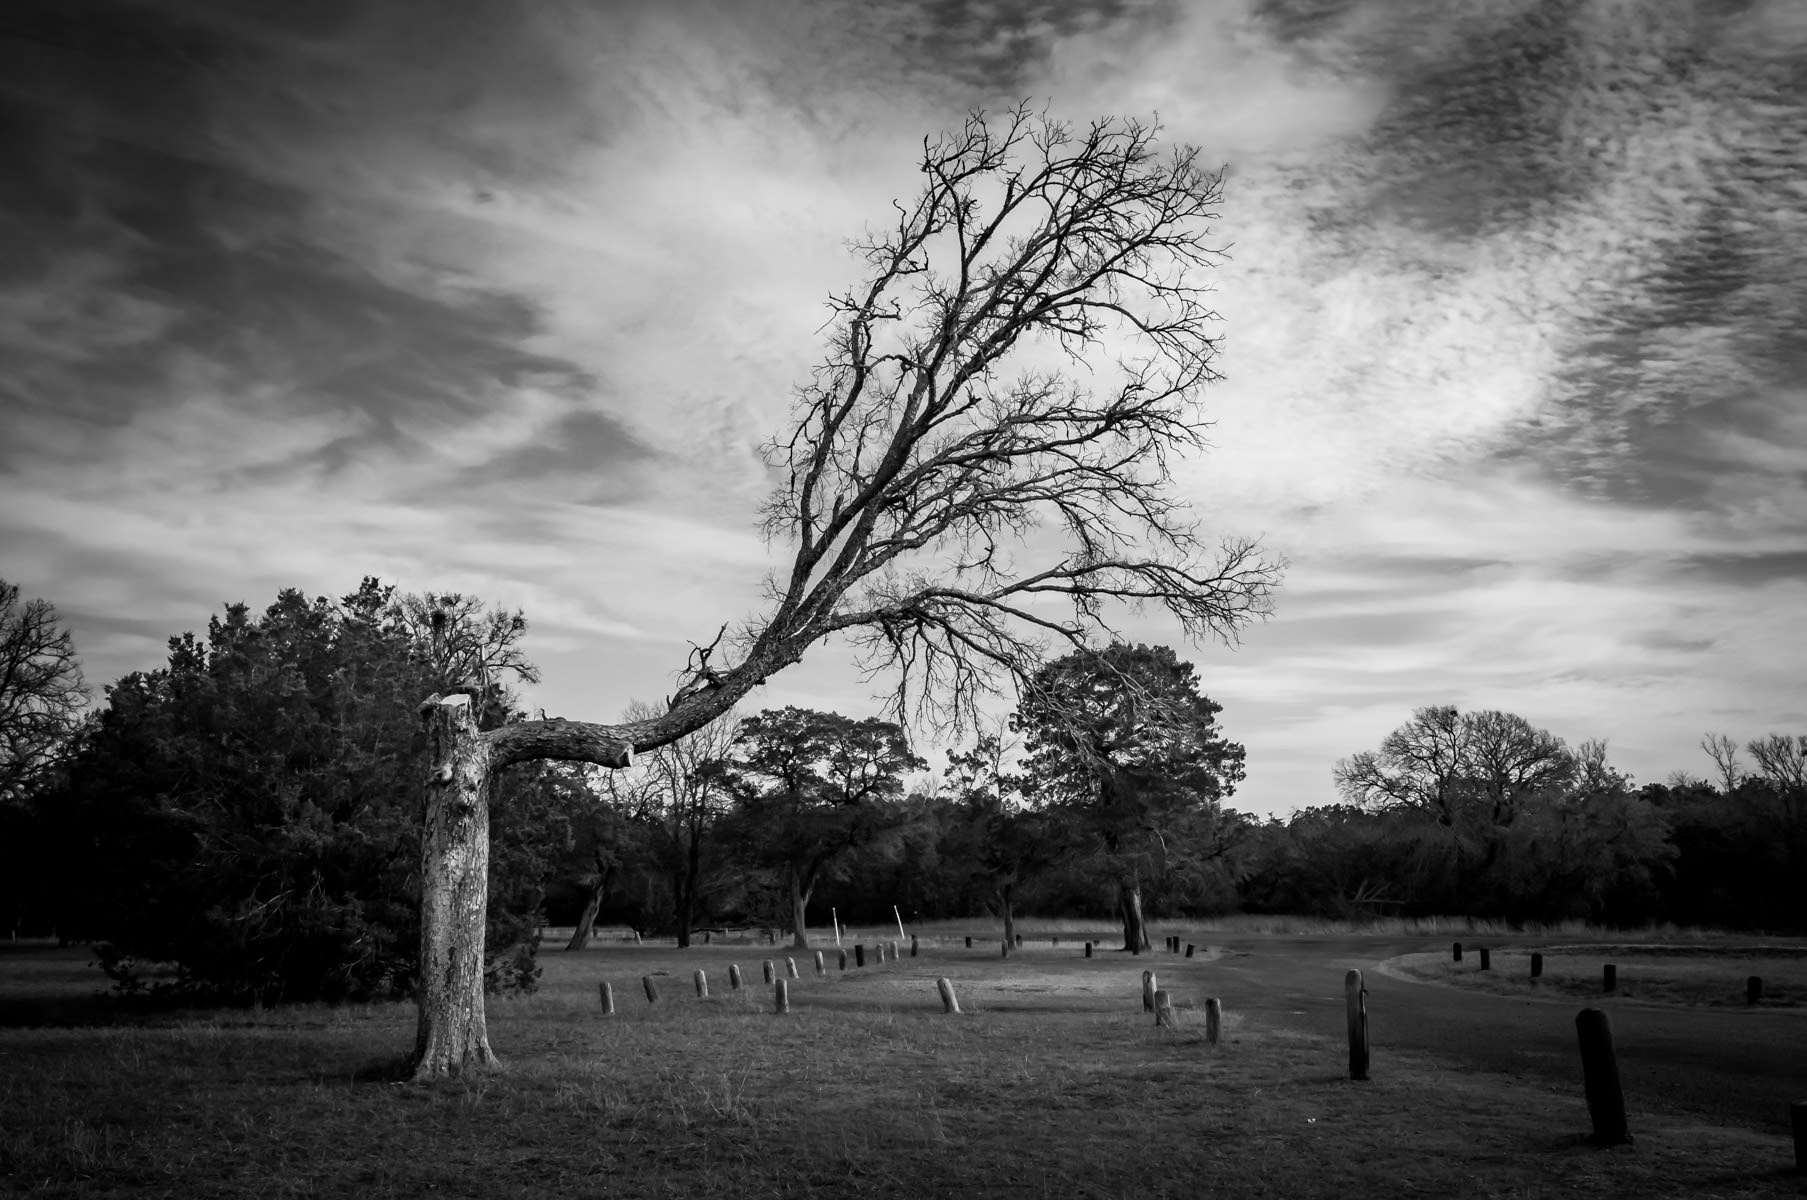 A crooked tree spotted at Texas' Dinosaur Valley State Park.